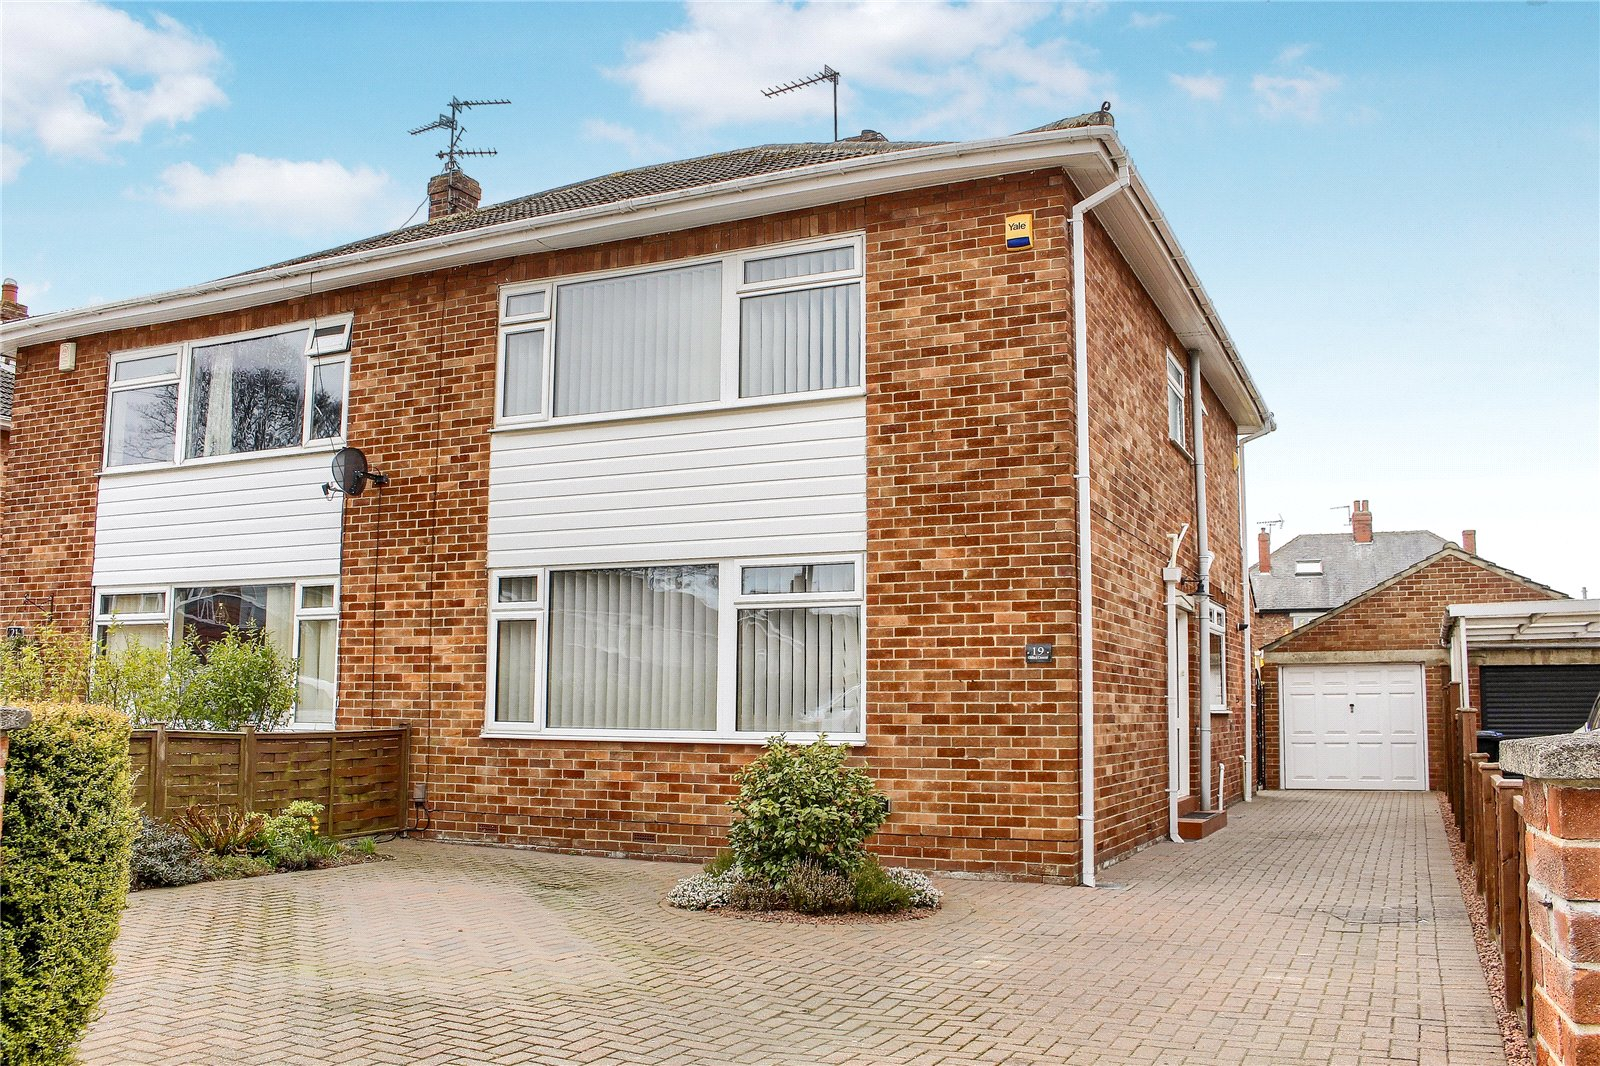 4 bed house for sale in Oldford Crescent, Acklam - Property Image 1